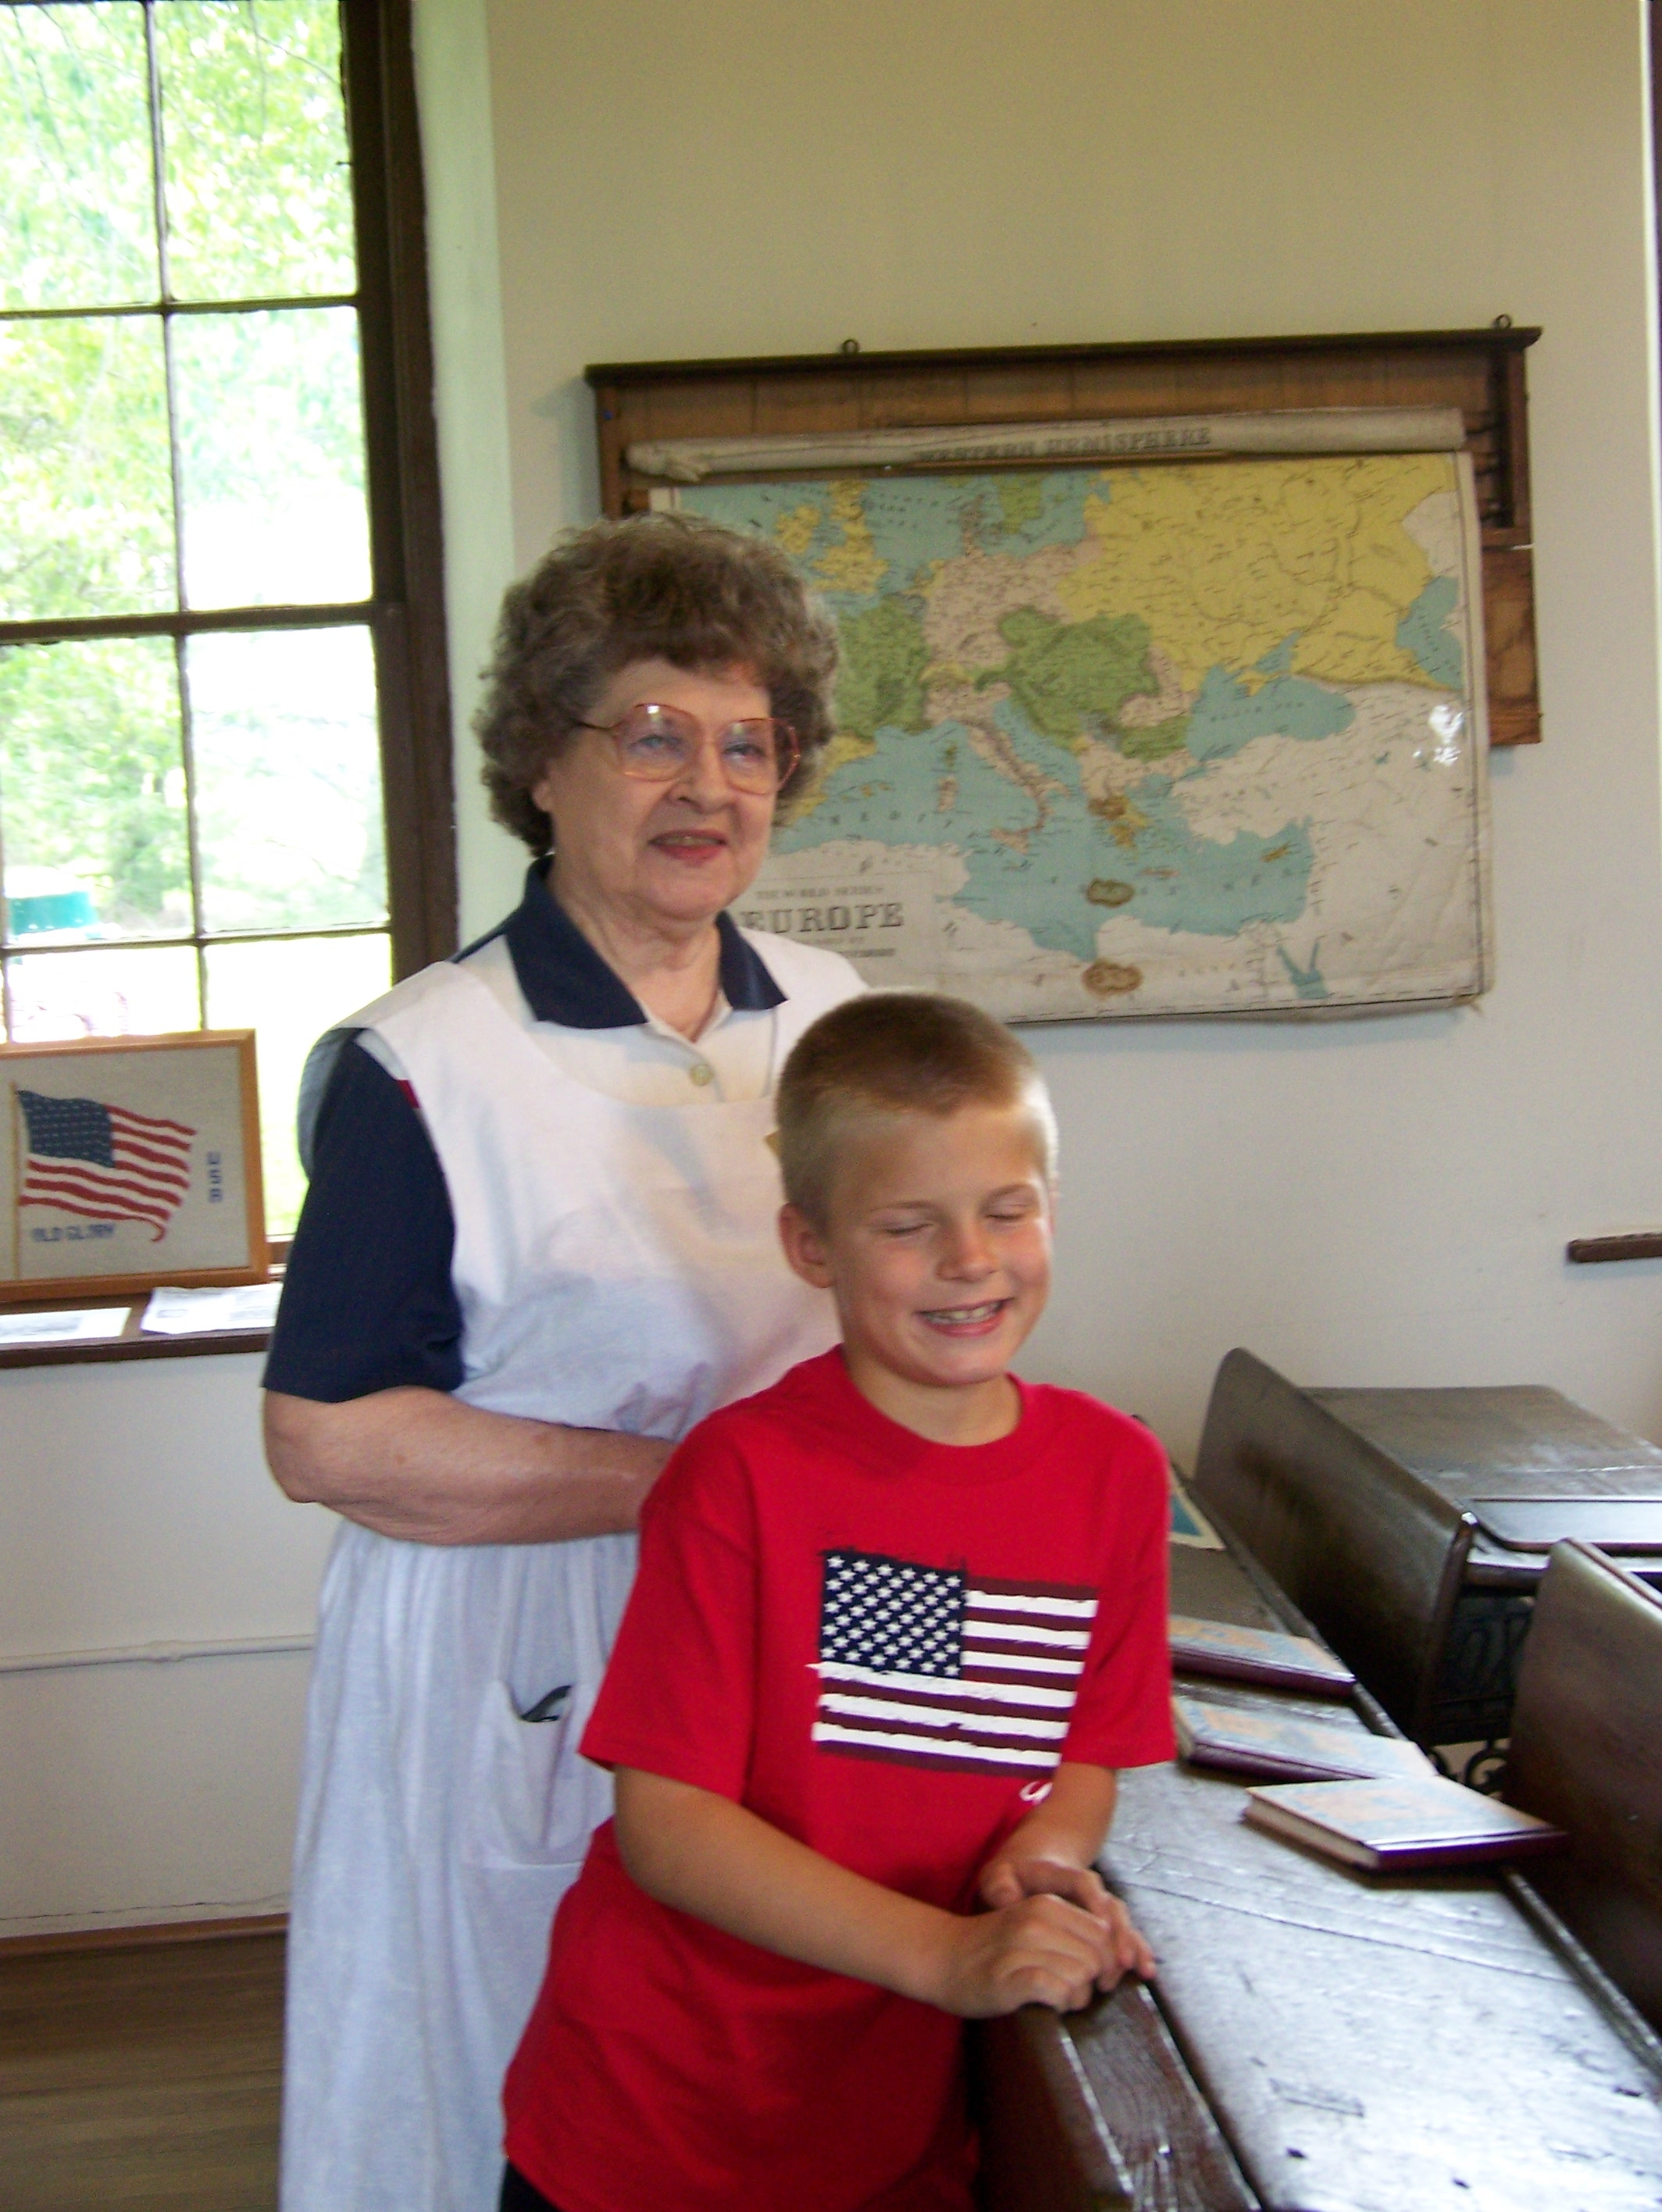 Older Woman and Young Boy in Small Old Schoolroom